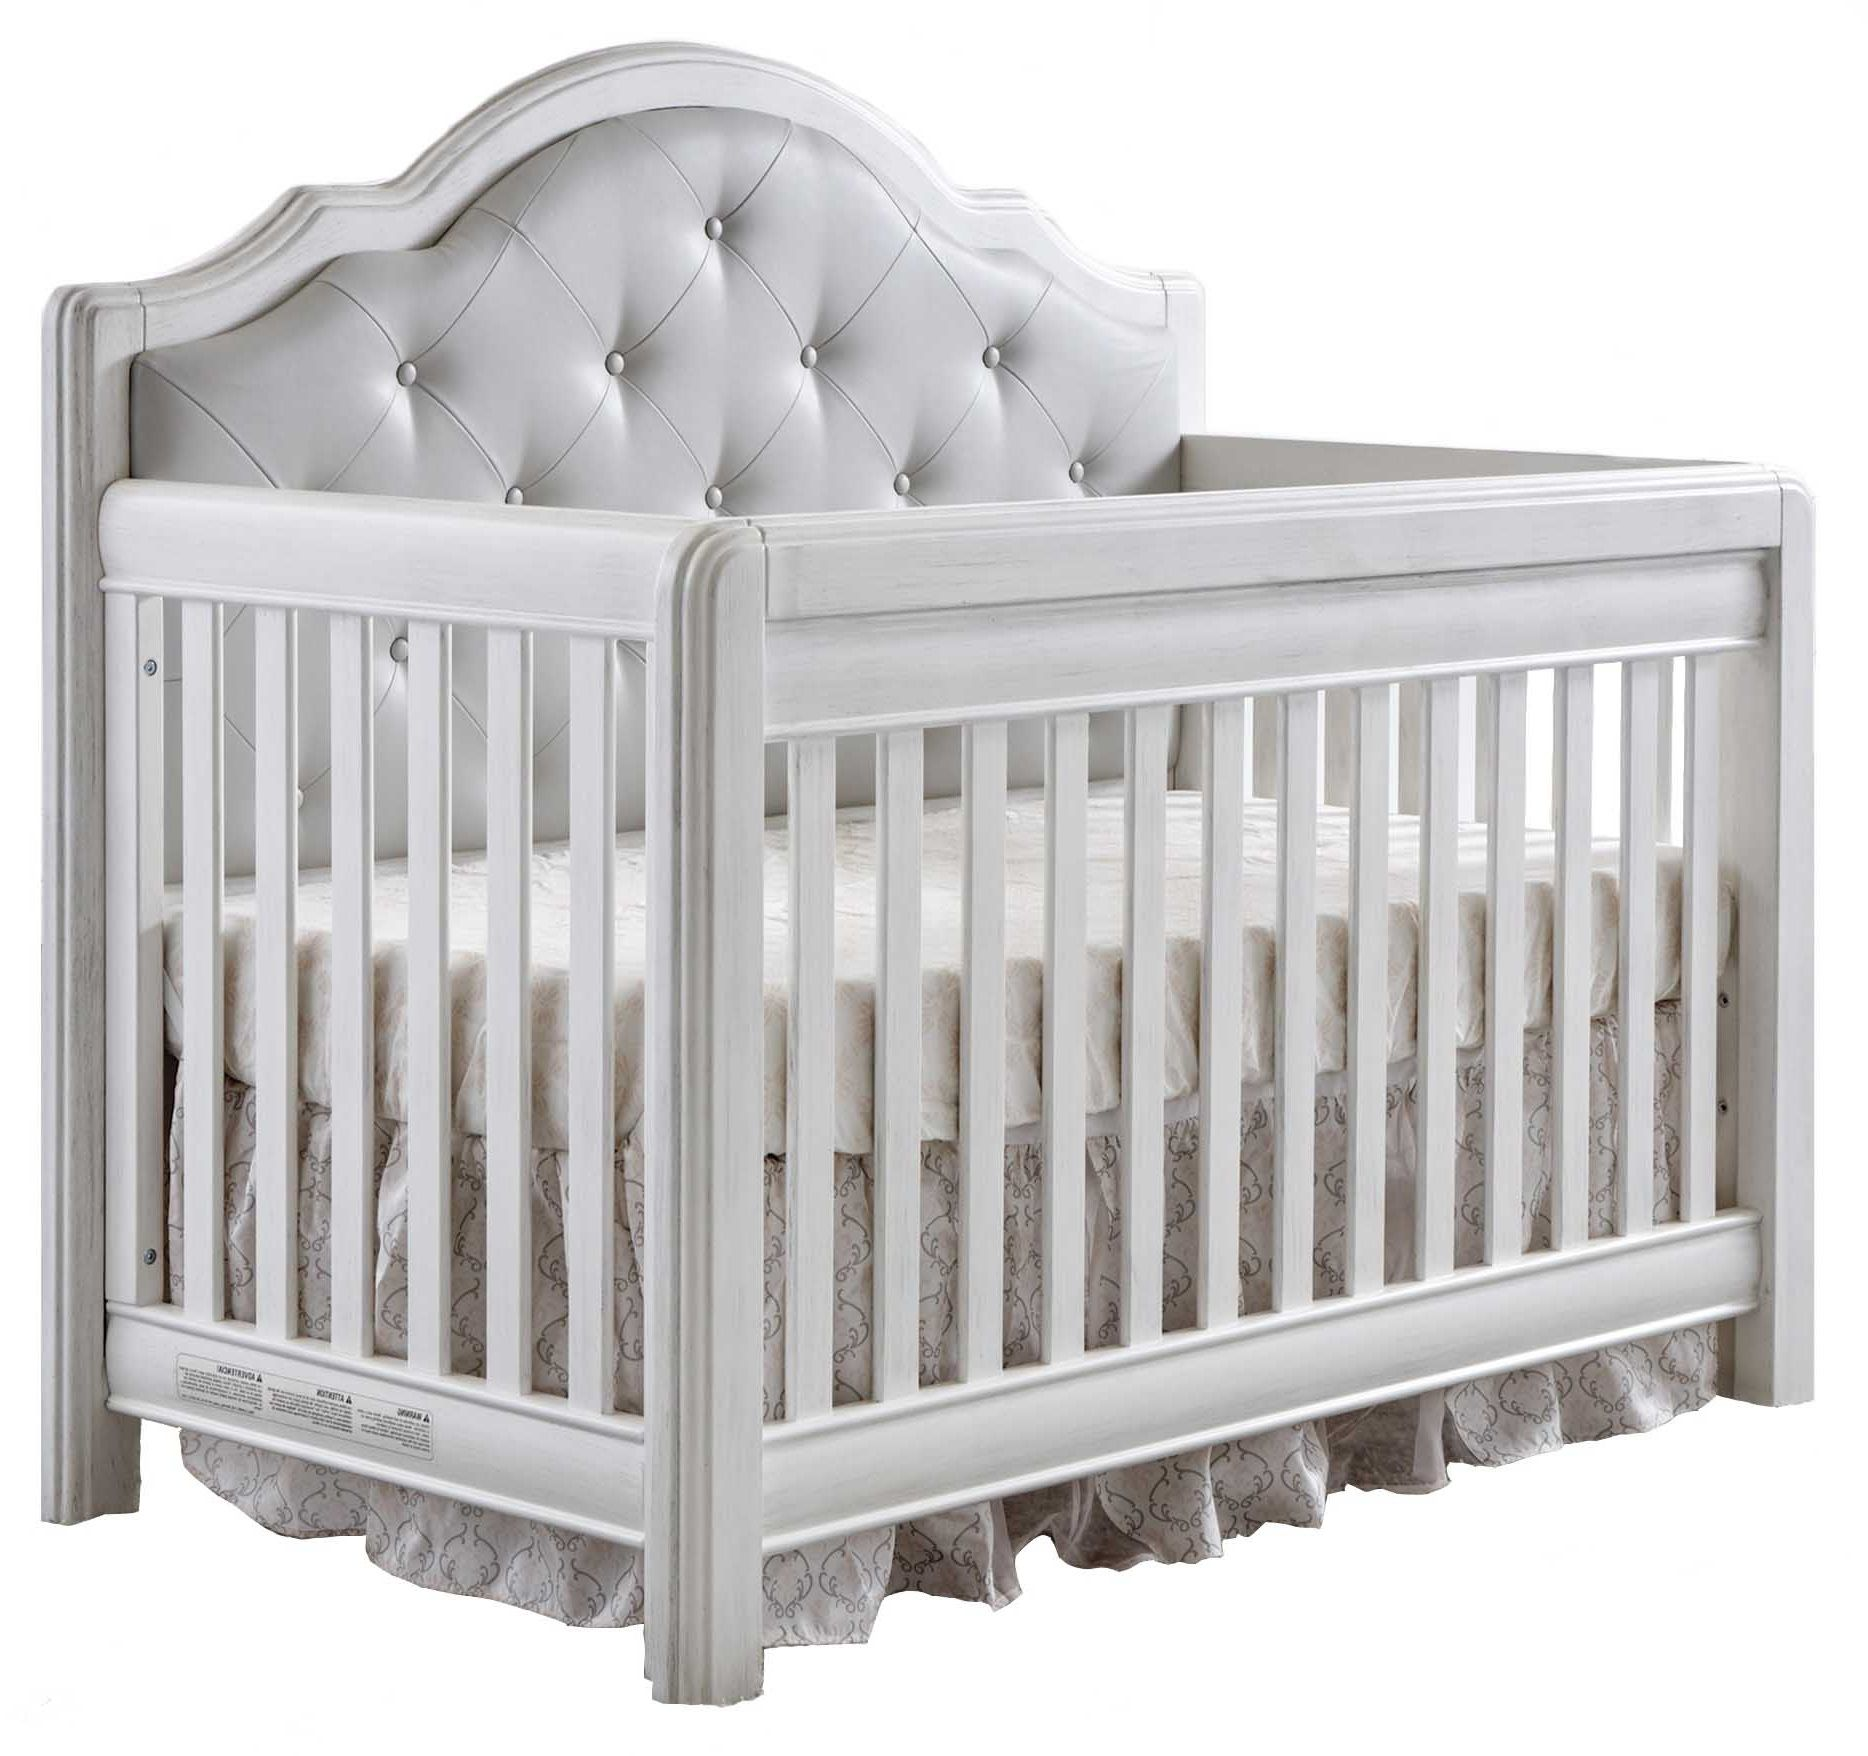 Pali crib for sale used - Pali Cristallo Forever Crib In Vintage White With Leather Panel